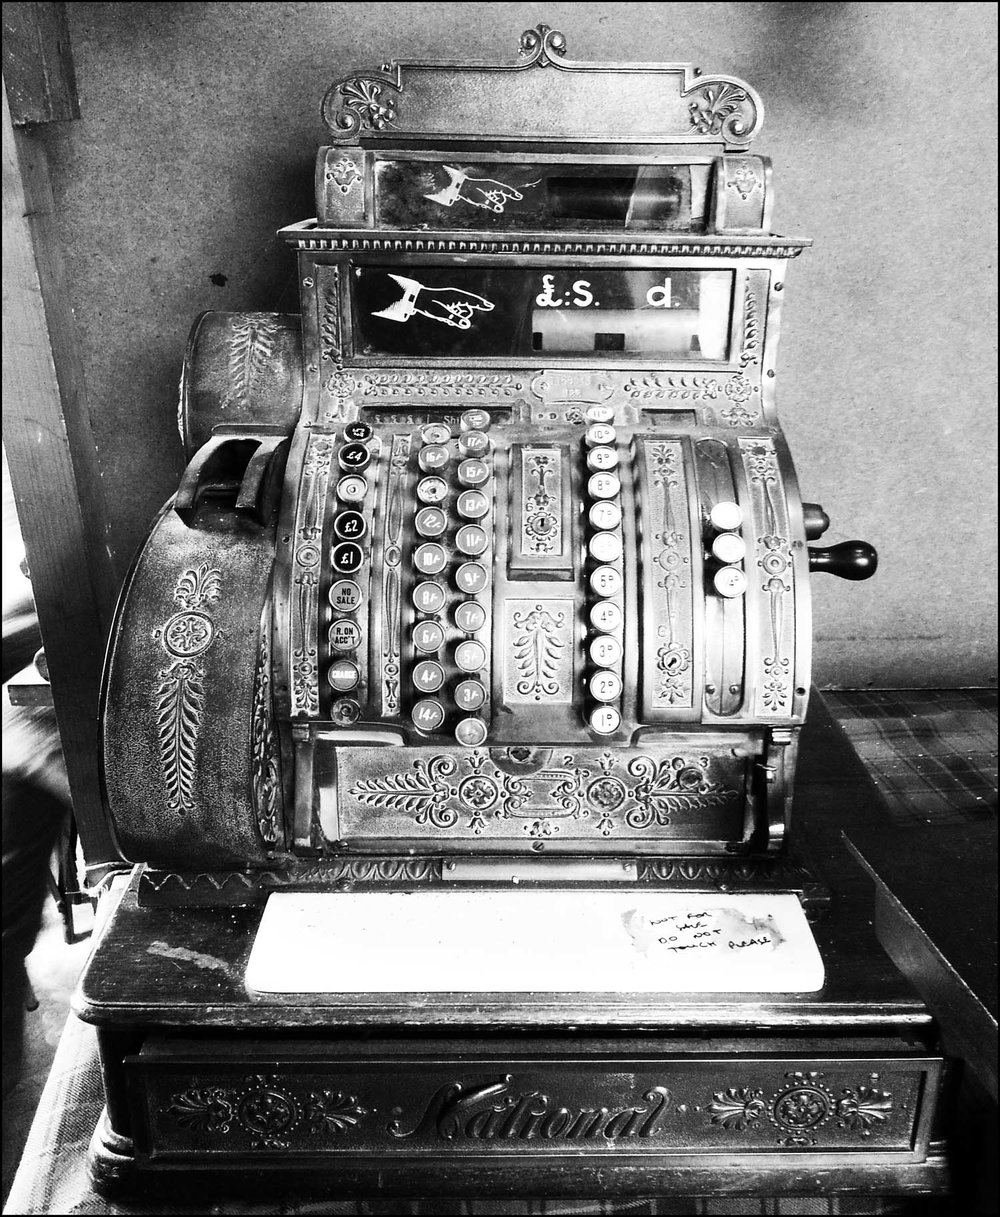 B&W Cash Register